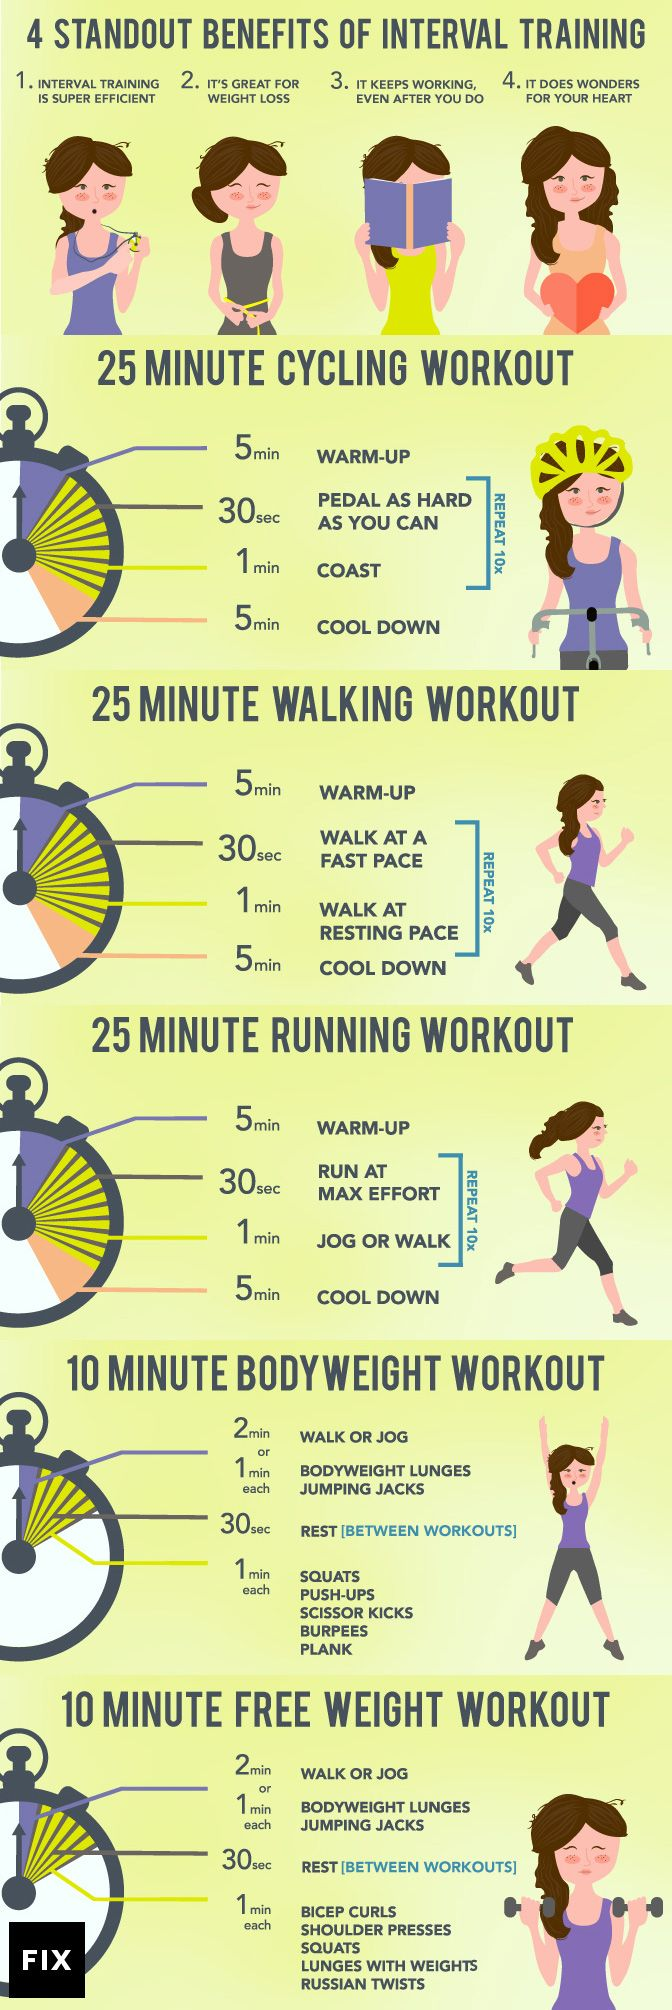 The Ultimate Guide to Interval Training - Only have 10-20 minutes a day to exercise, try this high intensity workout to burn fat.